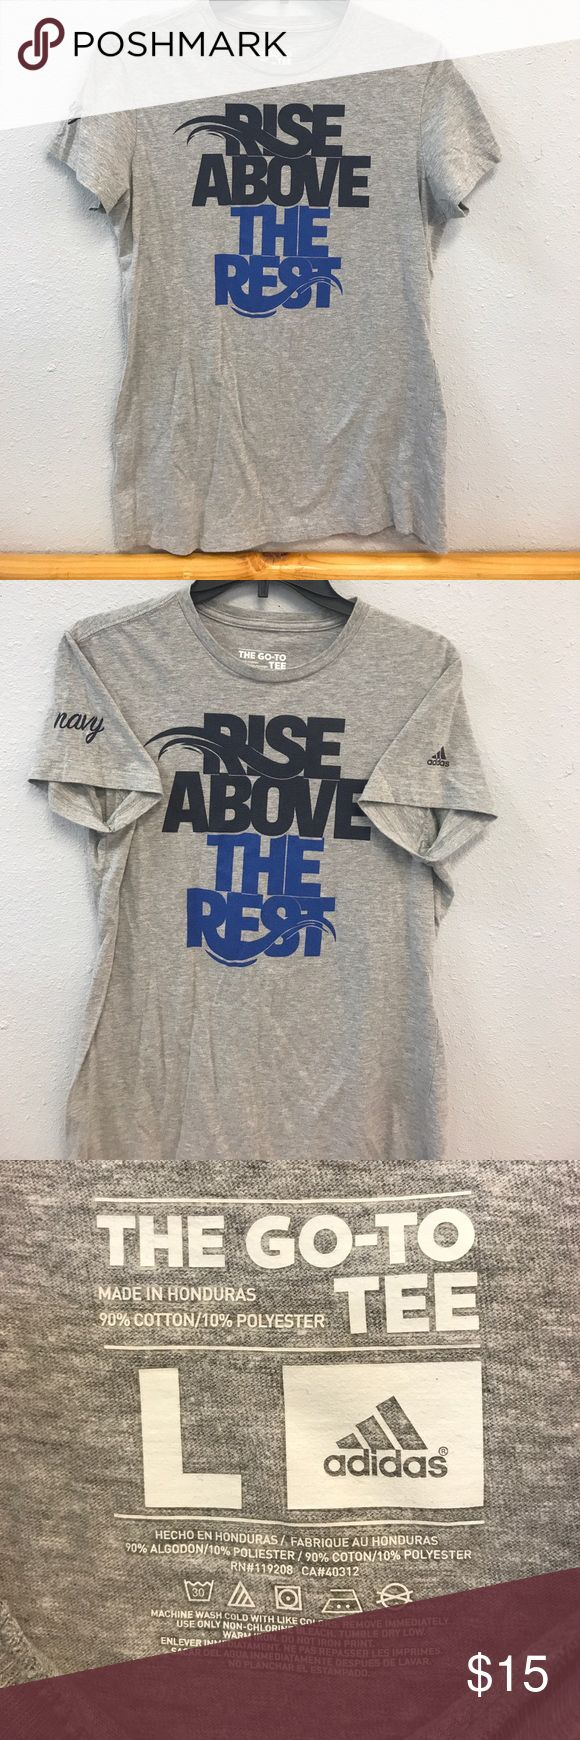 Women's Adidas Go-To Tee Rise above the Rest screen-printed on this heather grey Women's Adidas Go-To Tee. Navy is printed in the right sleeve, adidas logo on the left as shown in pic 2. Item is used but still in great shape. Size Large Adidas Tops Tees - Short Sleeve